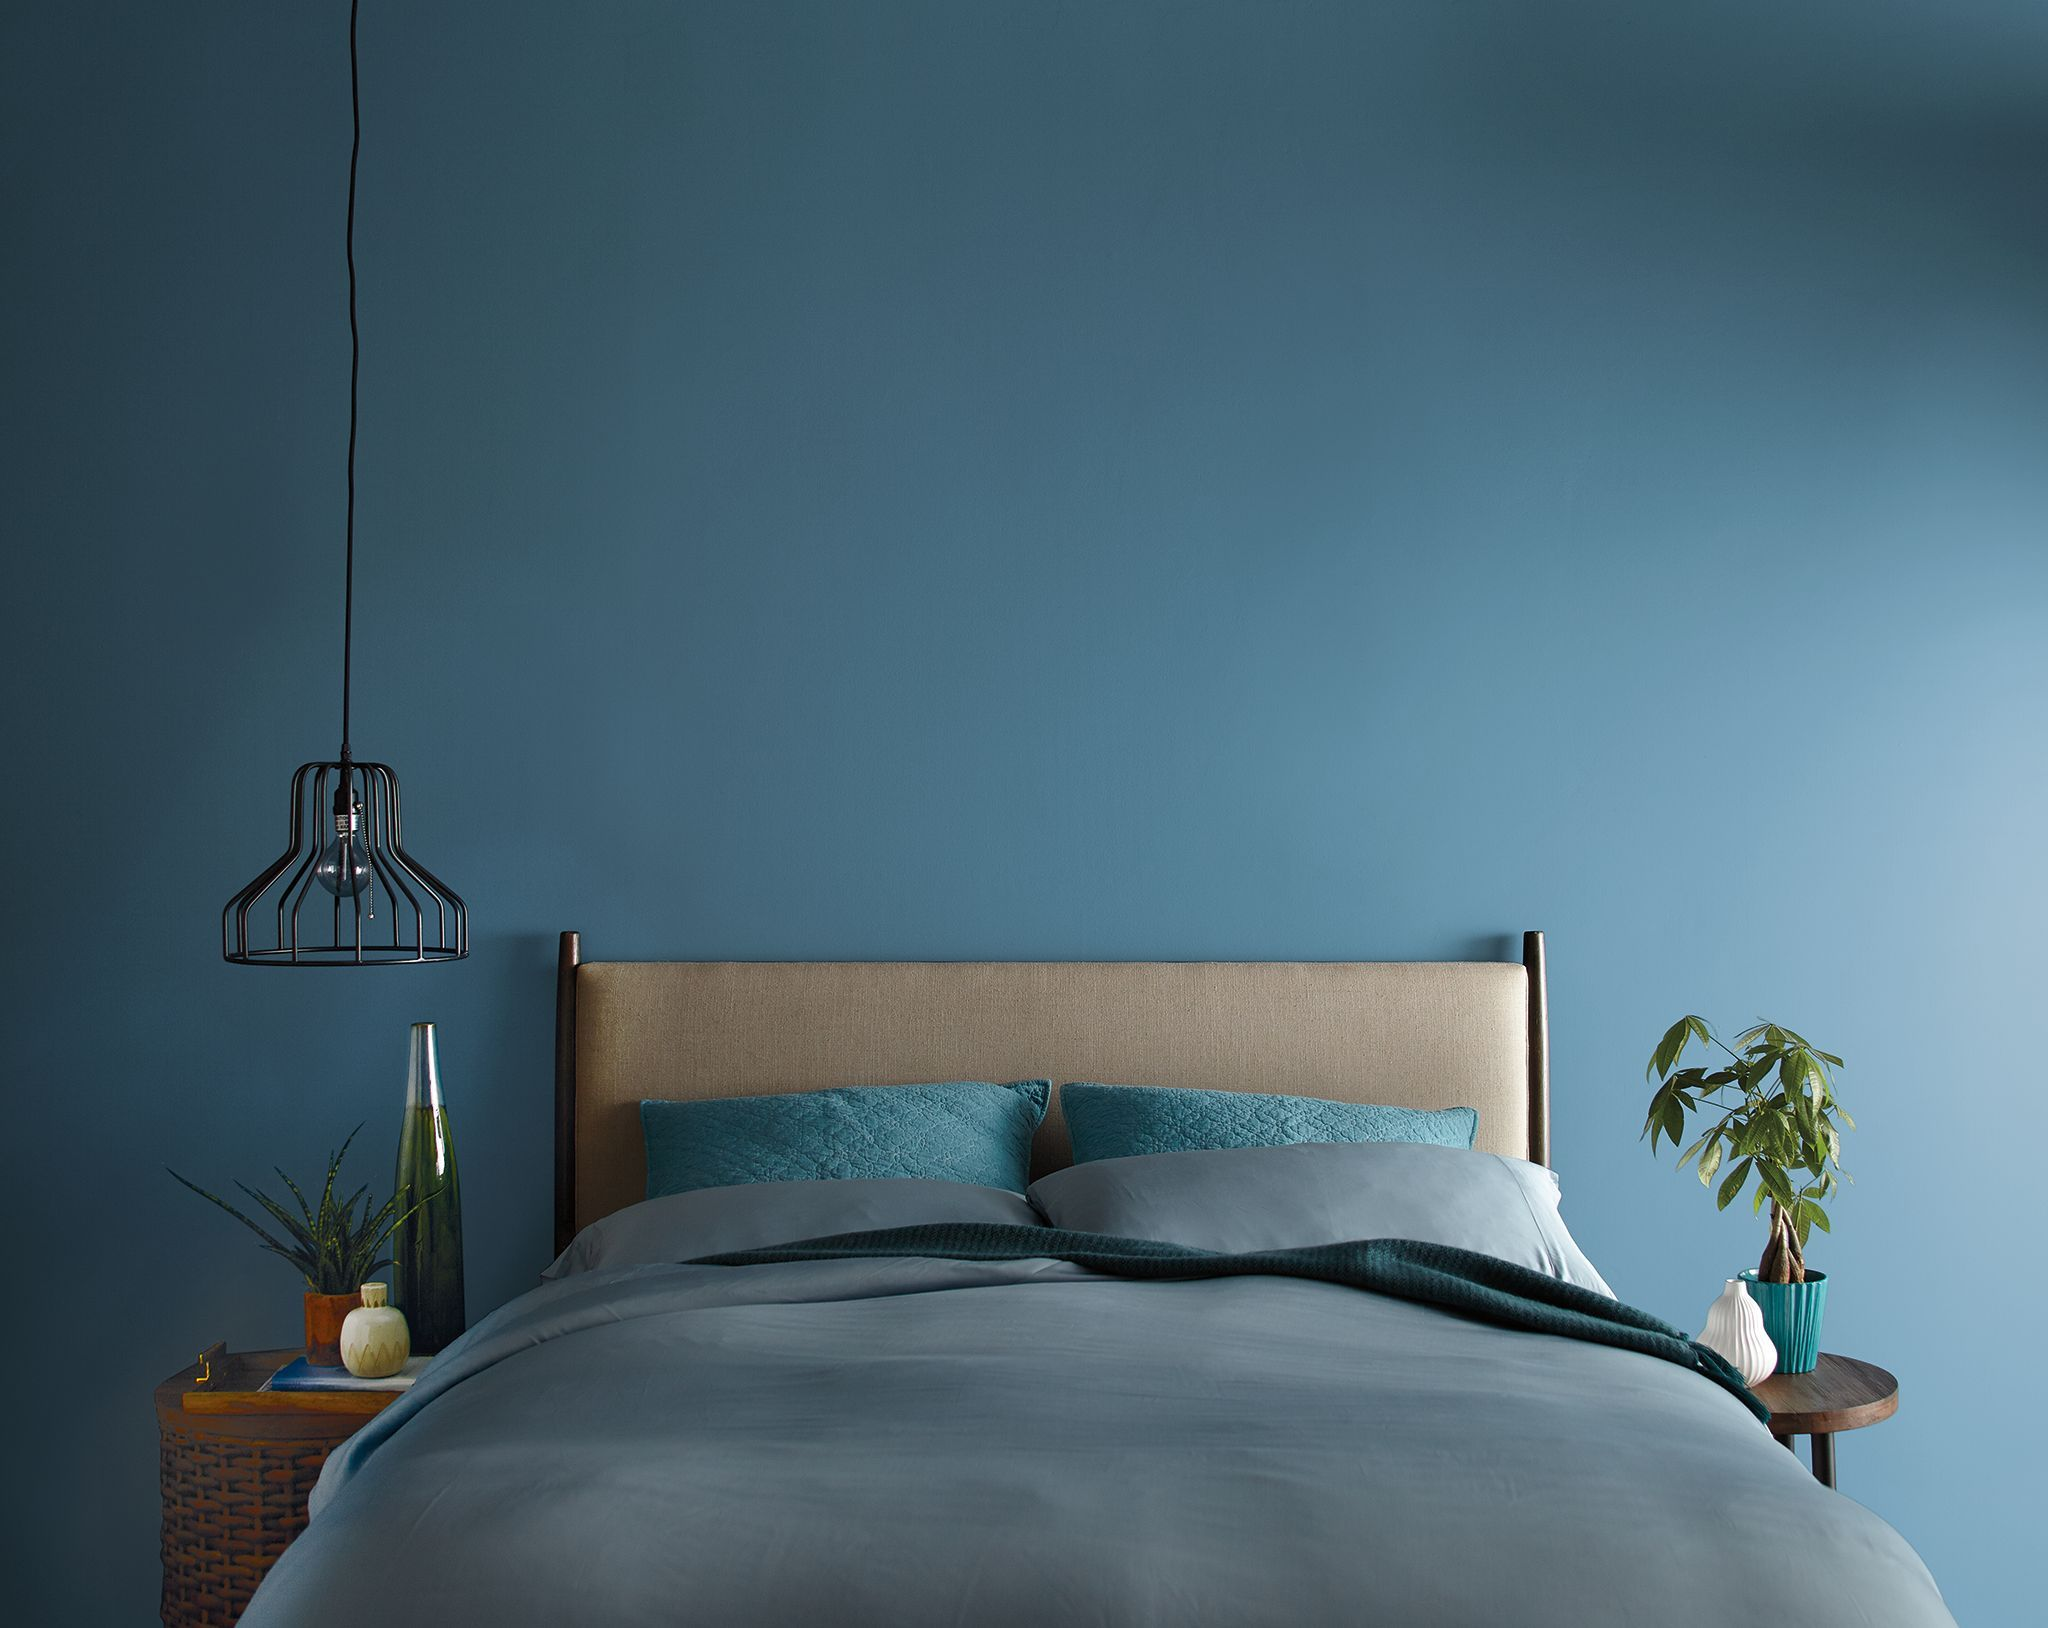 18 Best Bedroom Paint Colors According to Designers 2019